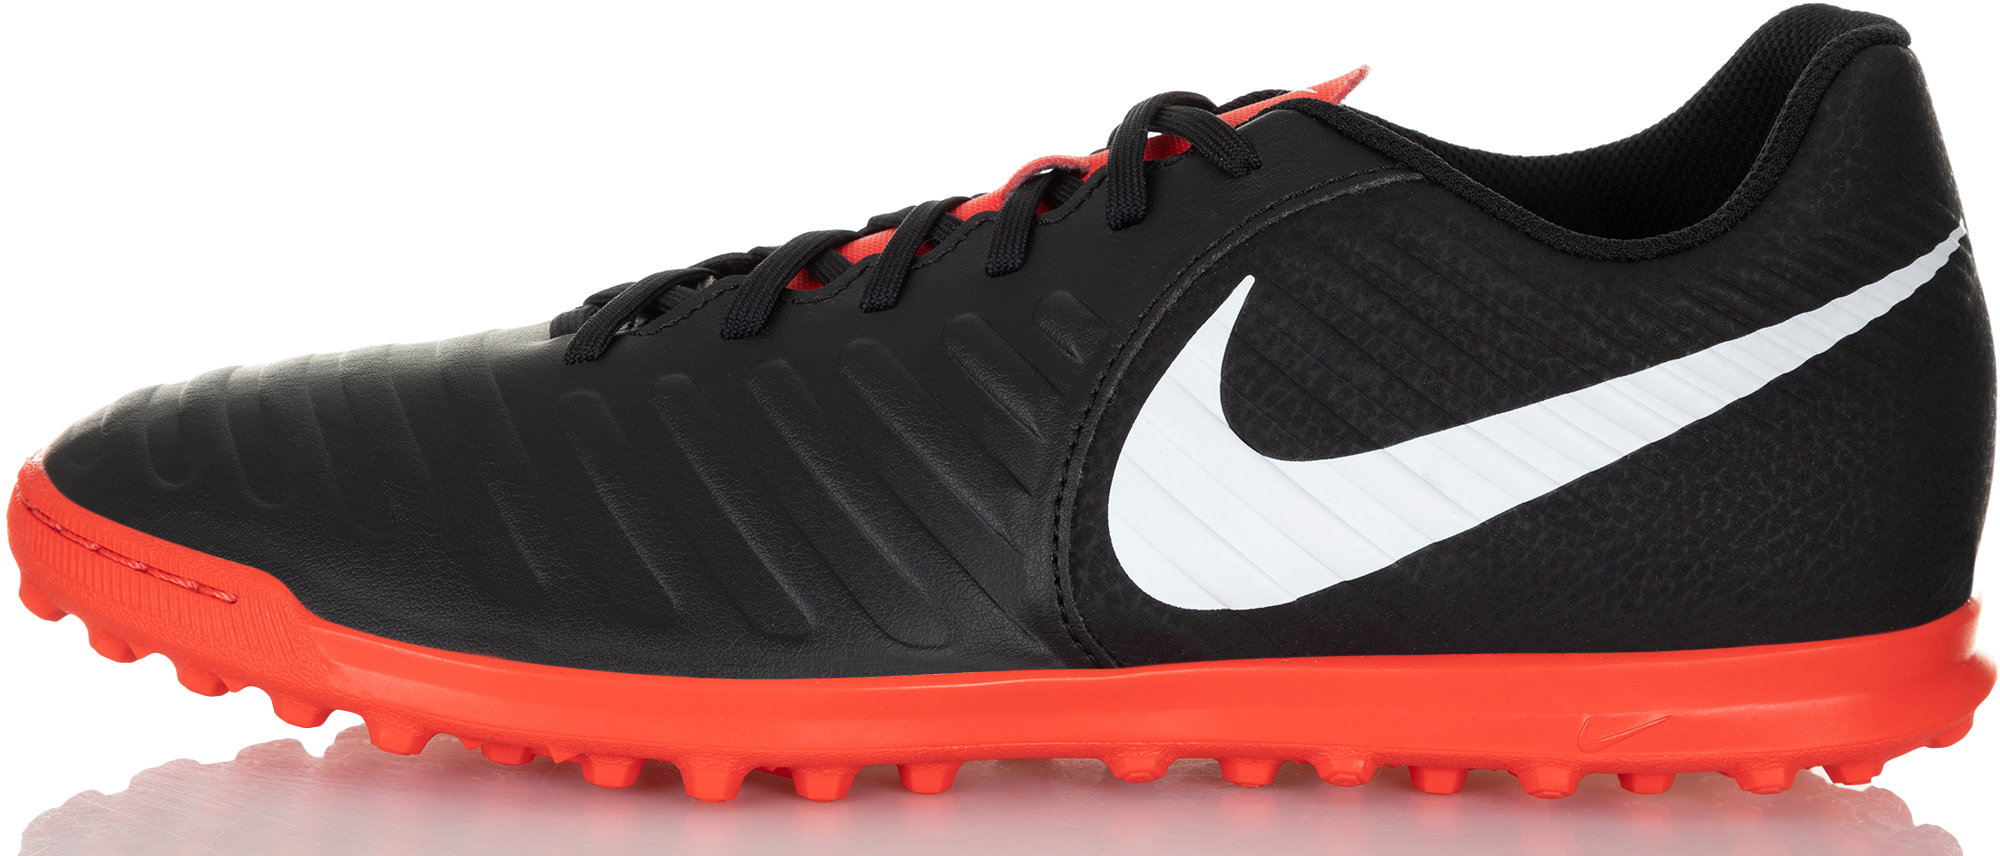 Nike Бутсы мужские Nike Tiempo LegendX 7 Club TF, размер 44,5 цена